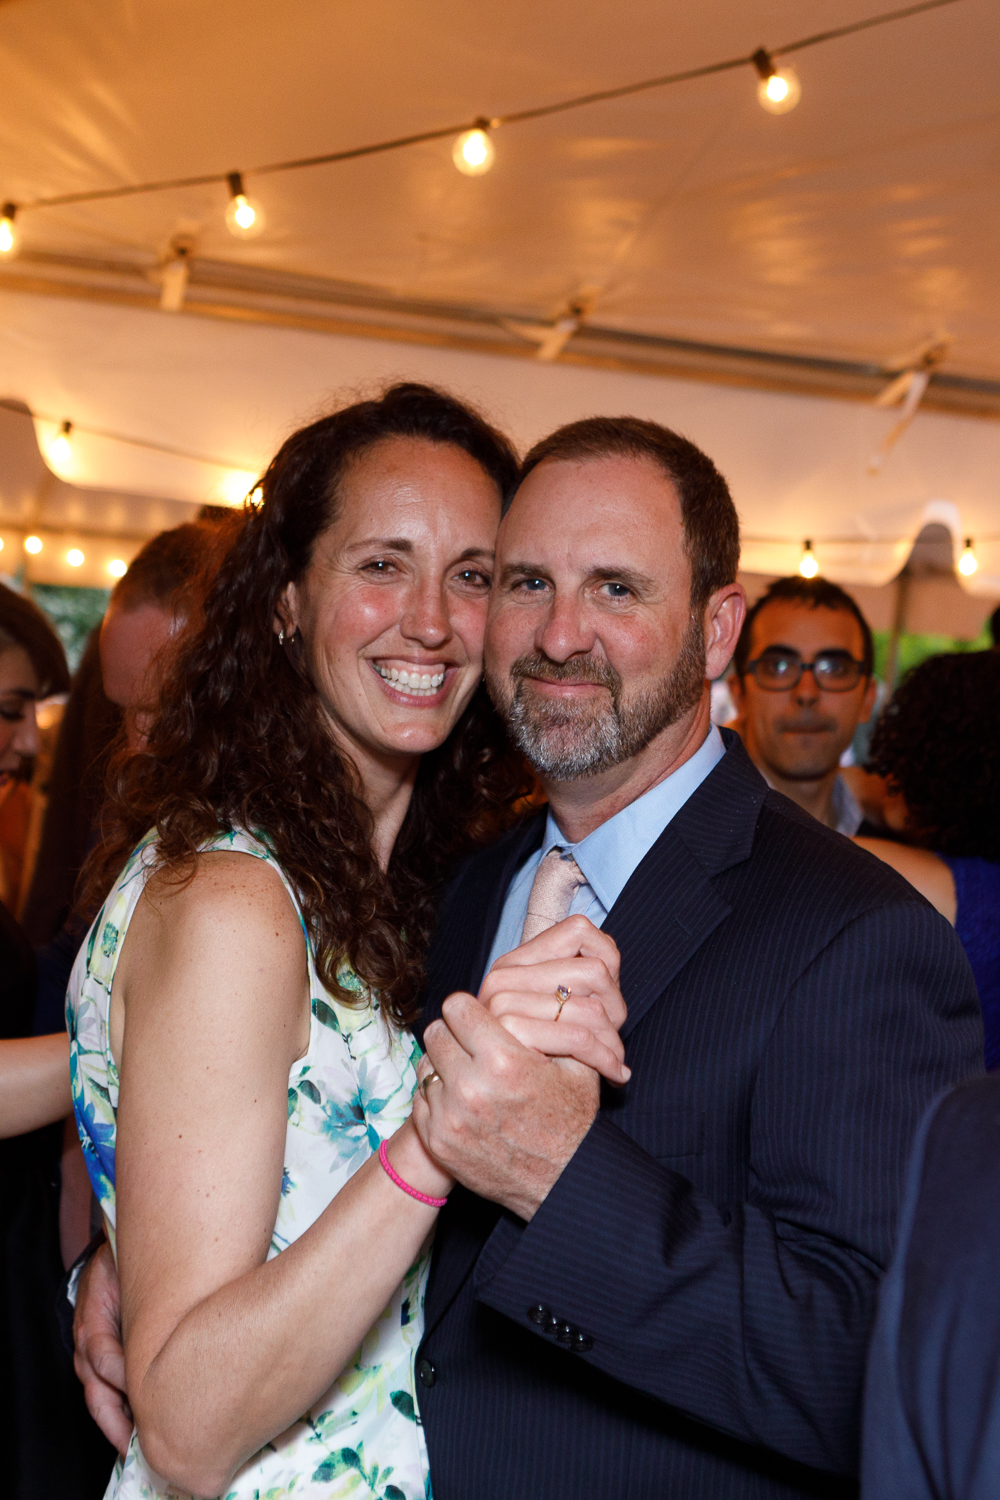 Brooklyn Wedding Photographer _ Jonathan Heisler _ 5112019 _030.jpg